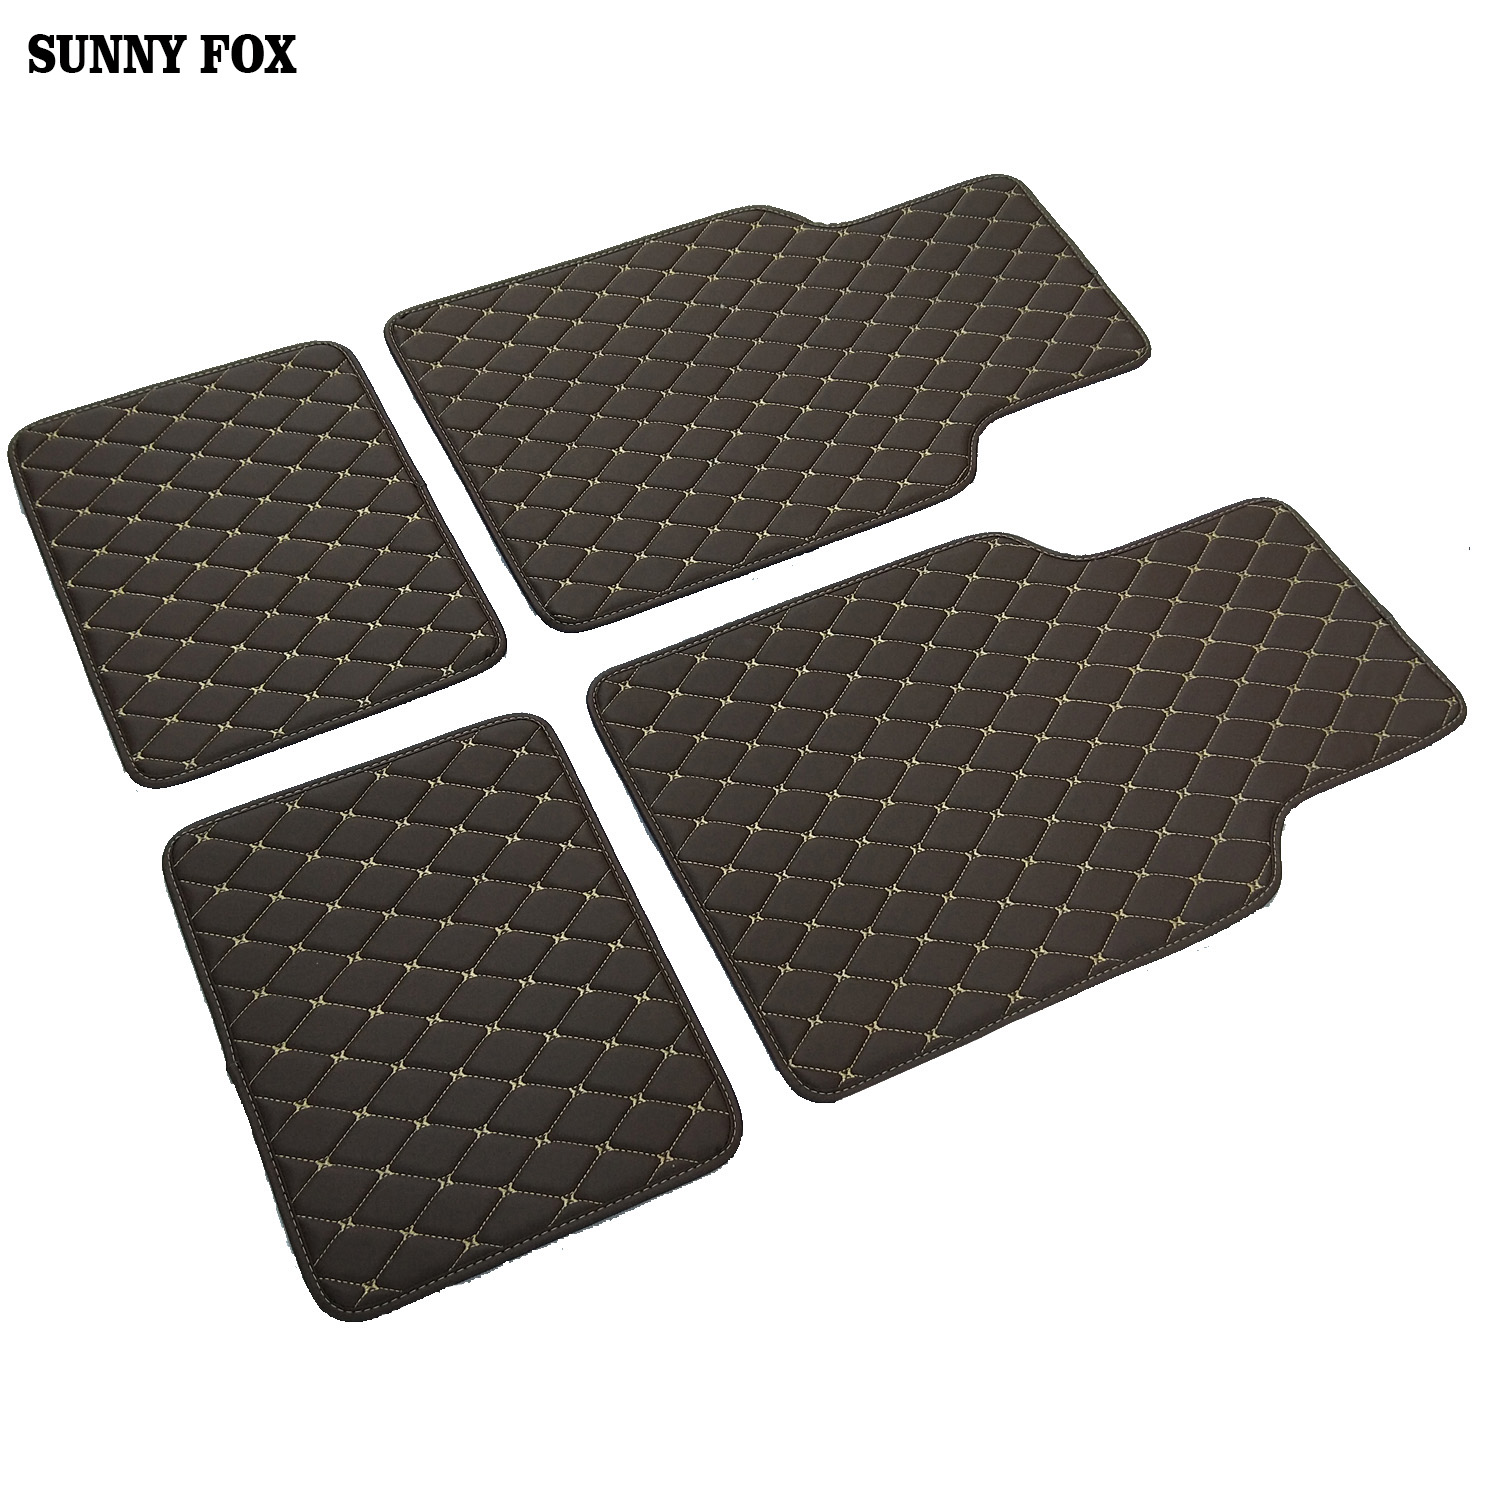 Universal <font><b>Car</b></font> floor <font><b>mats</b></font> for <font><b>Lexus</b></font> CT200h GS ES250/350/300h <font><b>RX350</b></font>/450H GX460h/400 LX570 LS <font><b>car</b></font>-styling carpet liners image